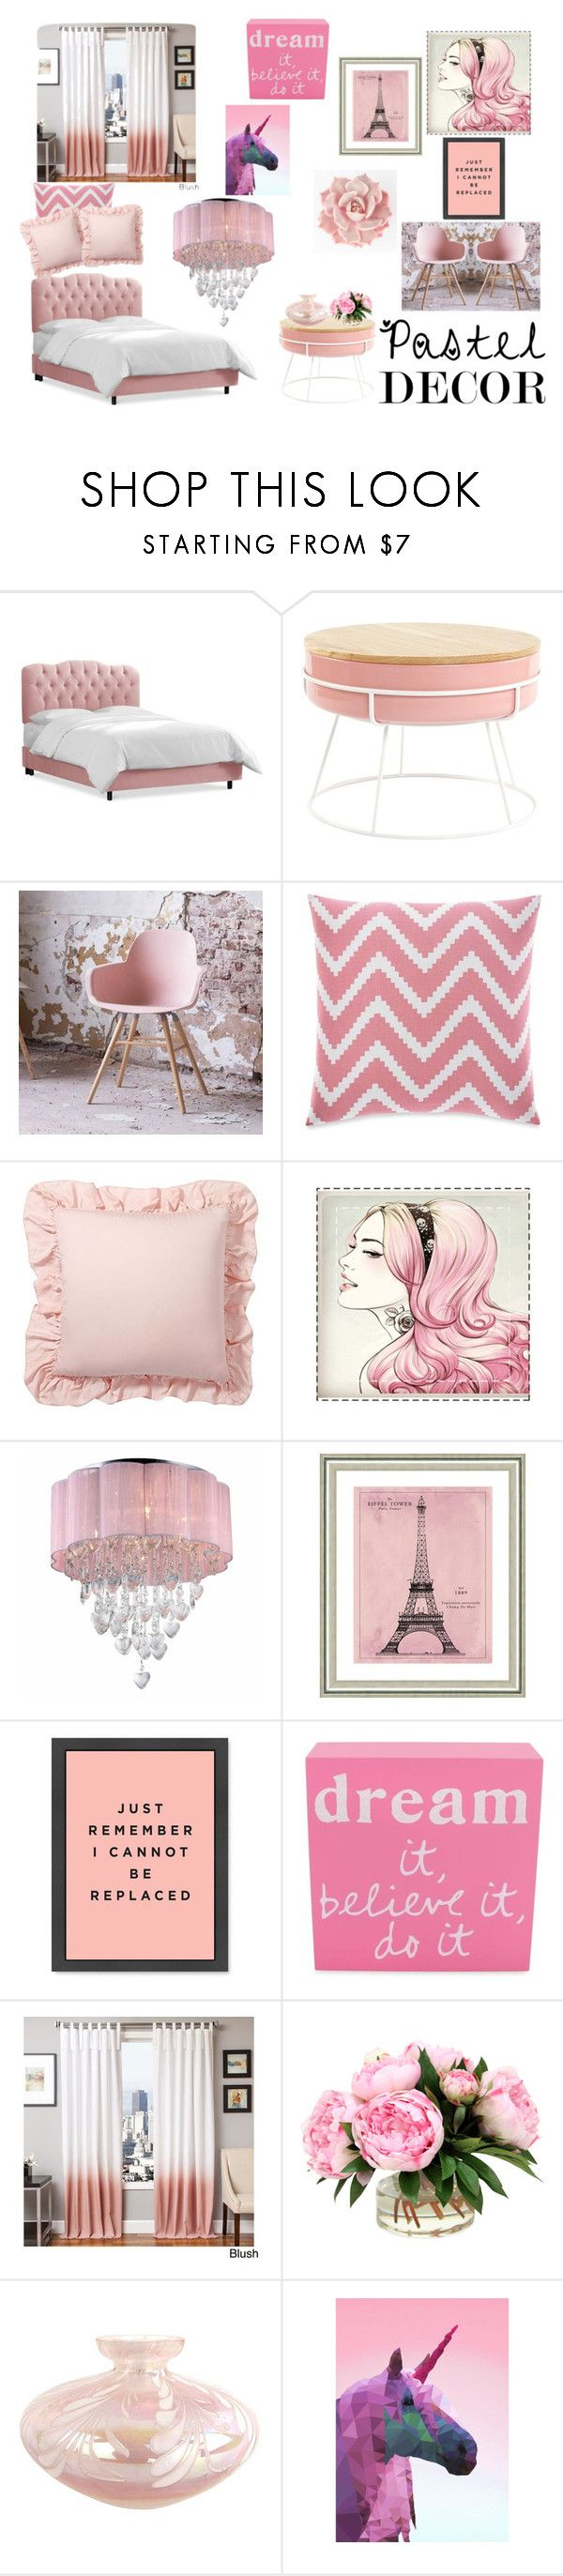 """Im not gonna win... Im just really bored lol"" by asa-marshallms ❤ liked on Polyvore featuring interior, interiors, interior design, home, home decor, interior decorating, Nautica, Pottery Barn, Warehouse of Tiffany and Vintage Print Gallery"